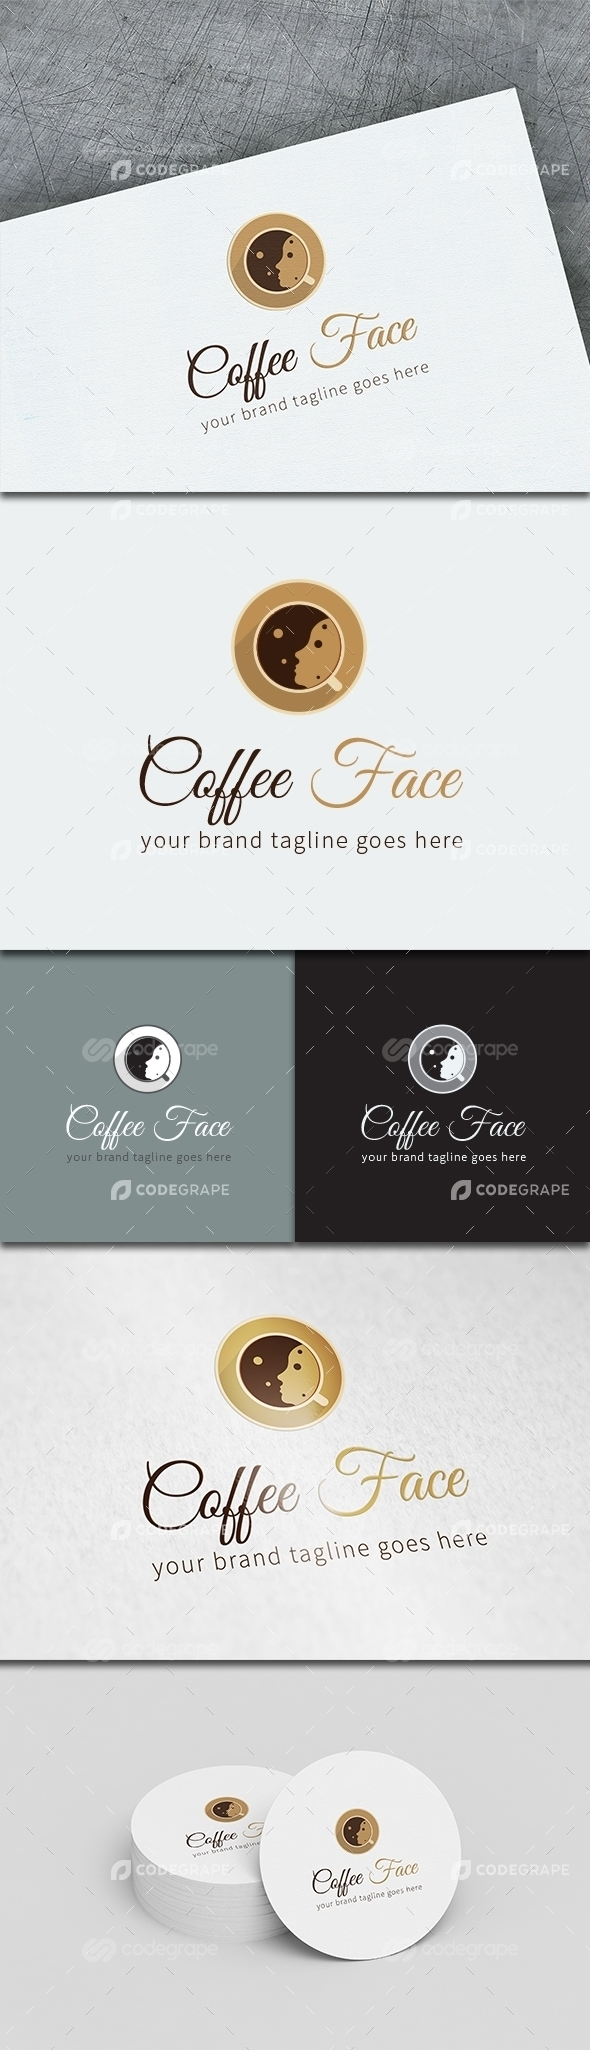 Coffee Face Logo Template